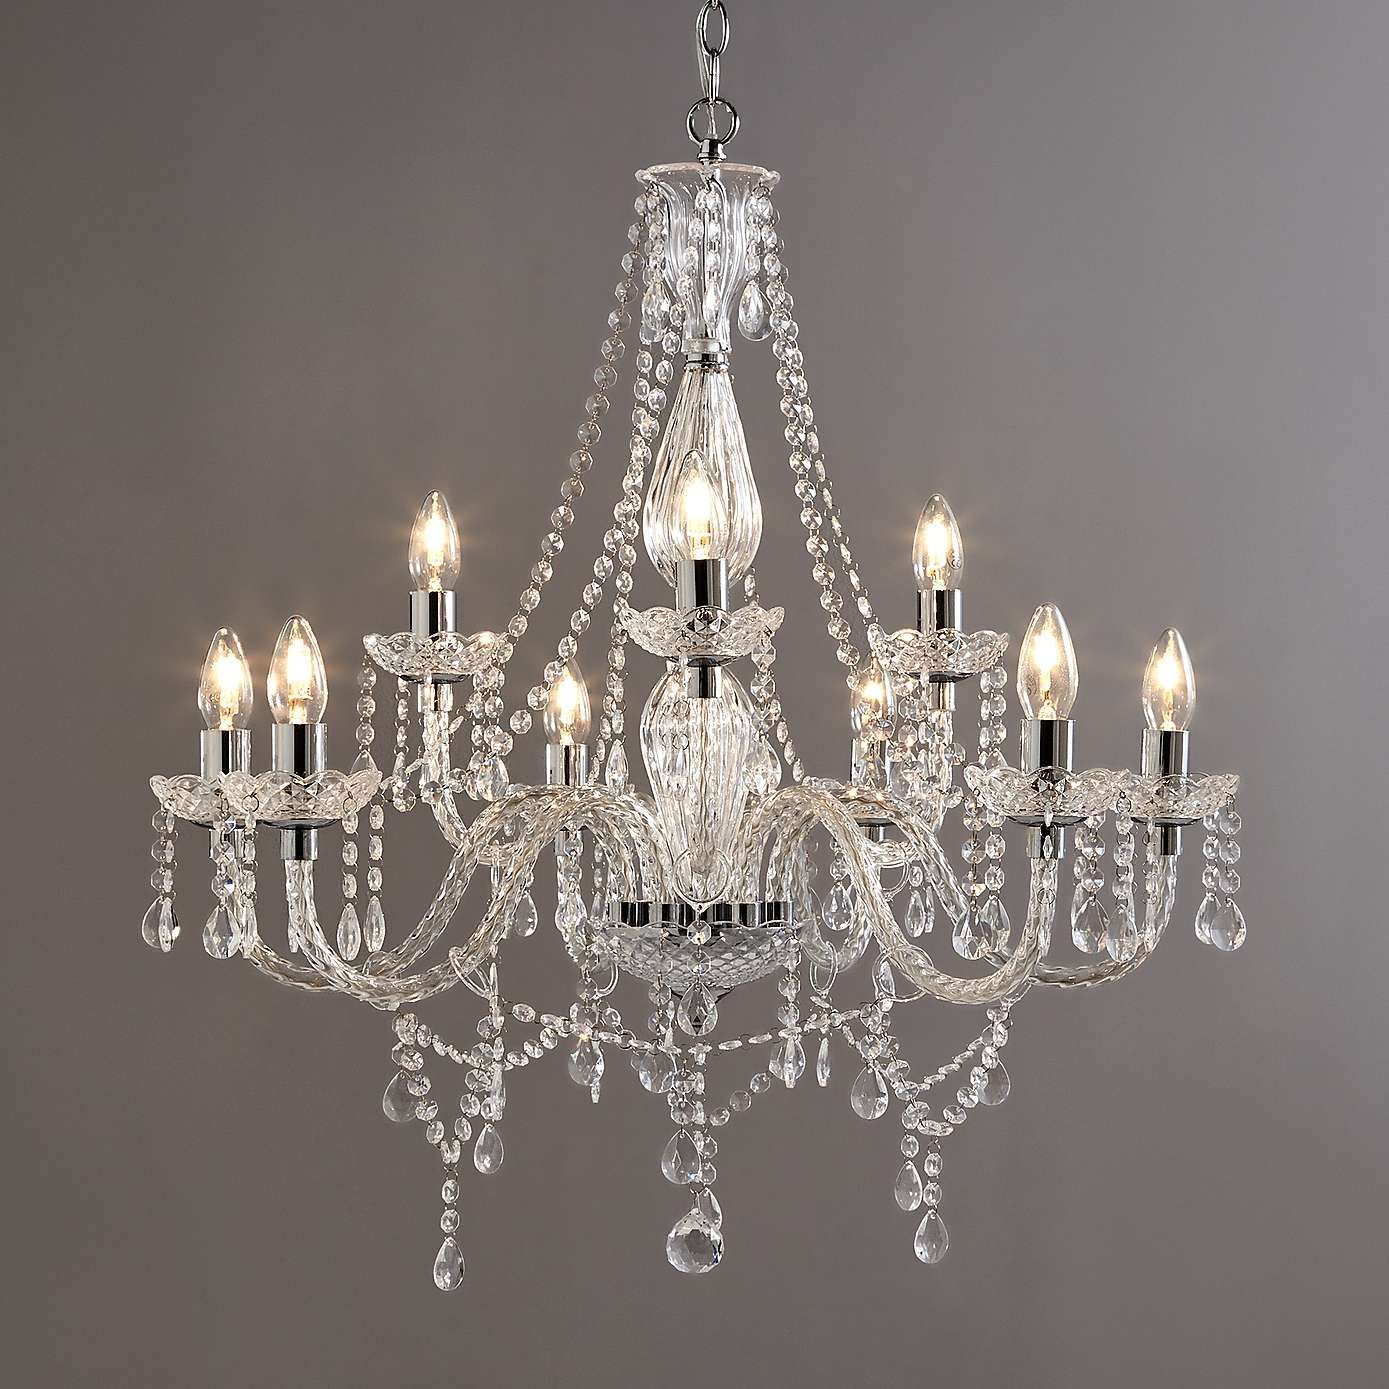 Bryony Chrome 9 Light Chandelier Dunelm Home Cabin